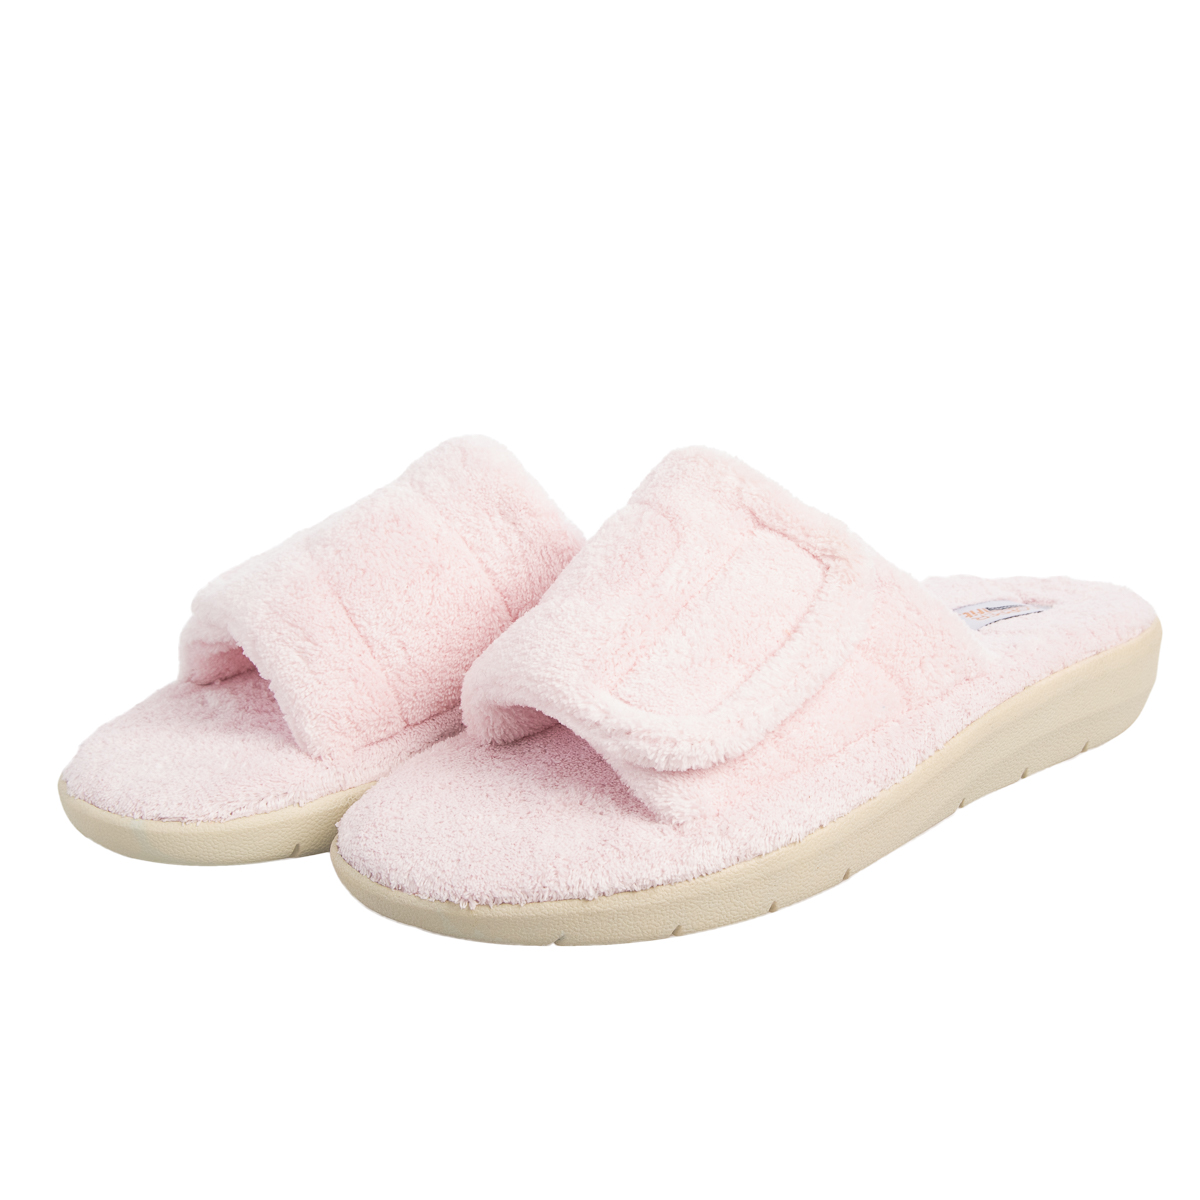 c8ac54ad14 Copper Fit Women's House Slippers Slides Arch Support Indoor Outdoor ...